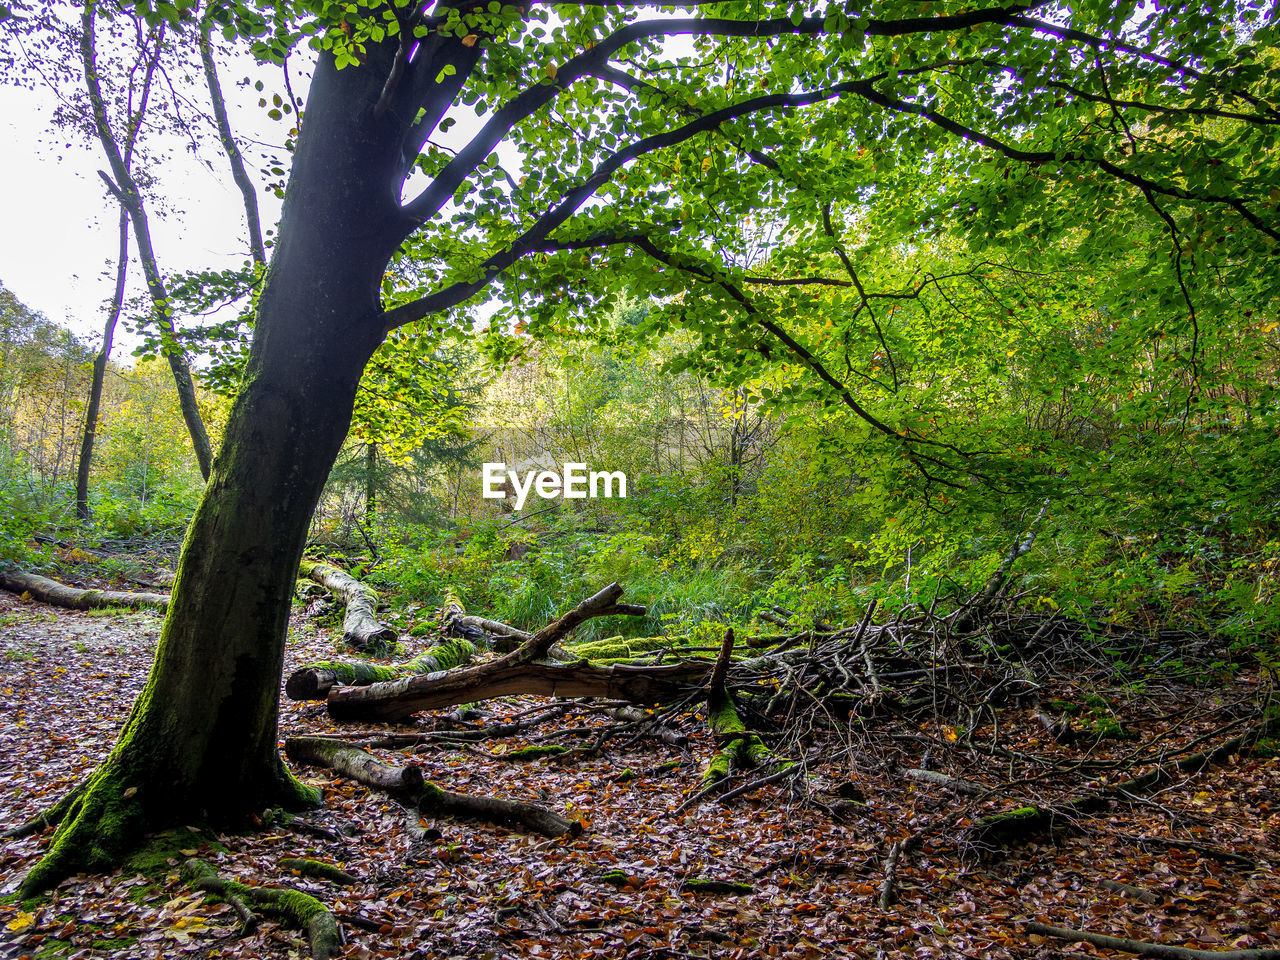 tree, plant, forest, land, tranquility, growth, beauty in nature, nature, tree trunk, trunk, tranquil scene, no people, day, scenics - nature, woodland, green color, non-urban scene, outdoors, branch, environment, trail